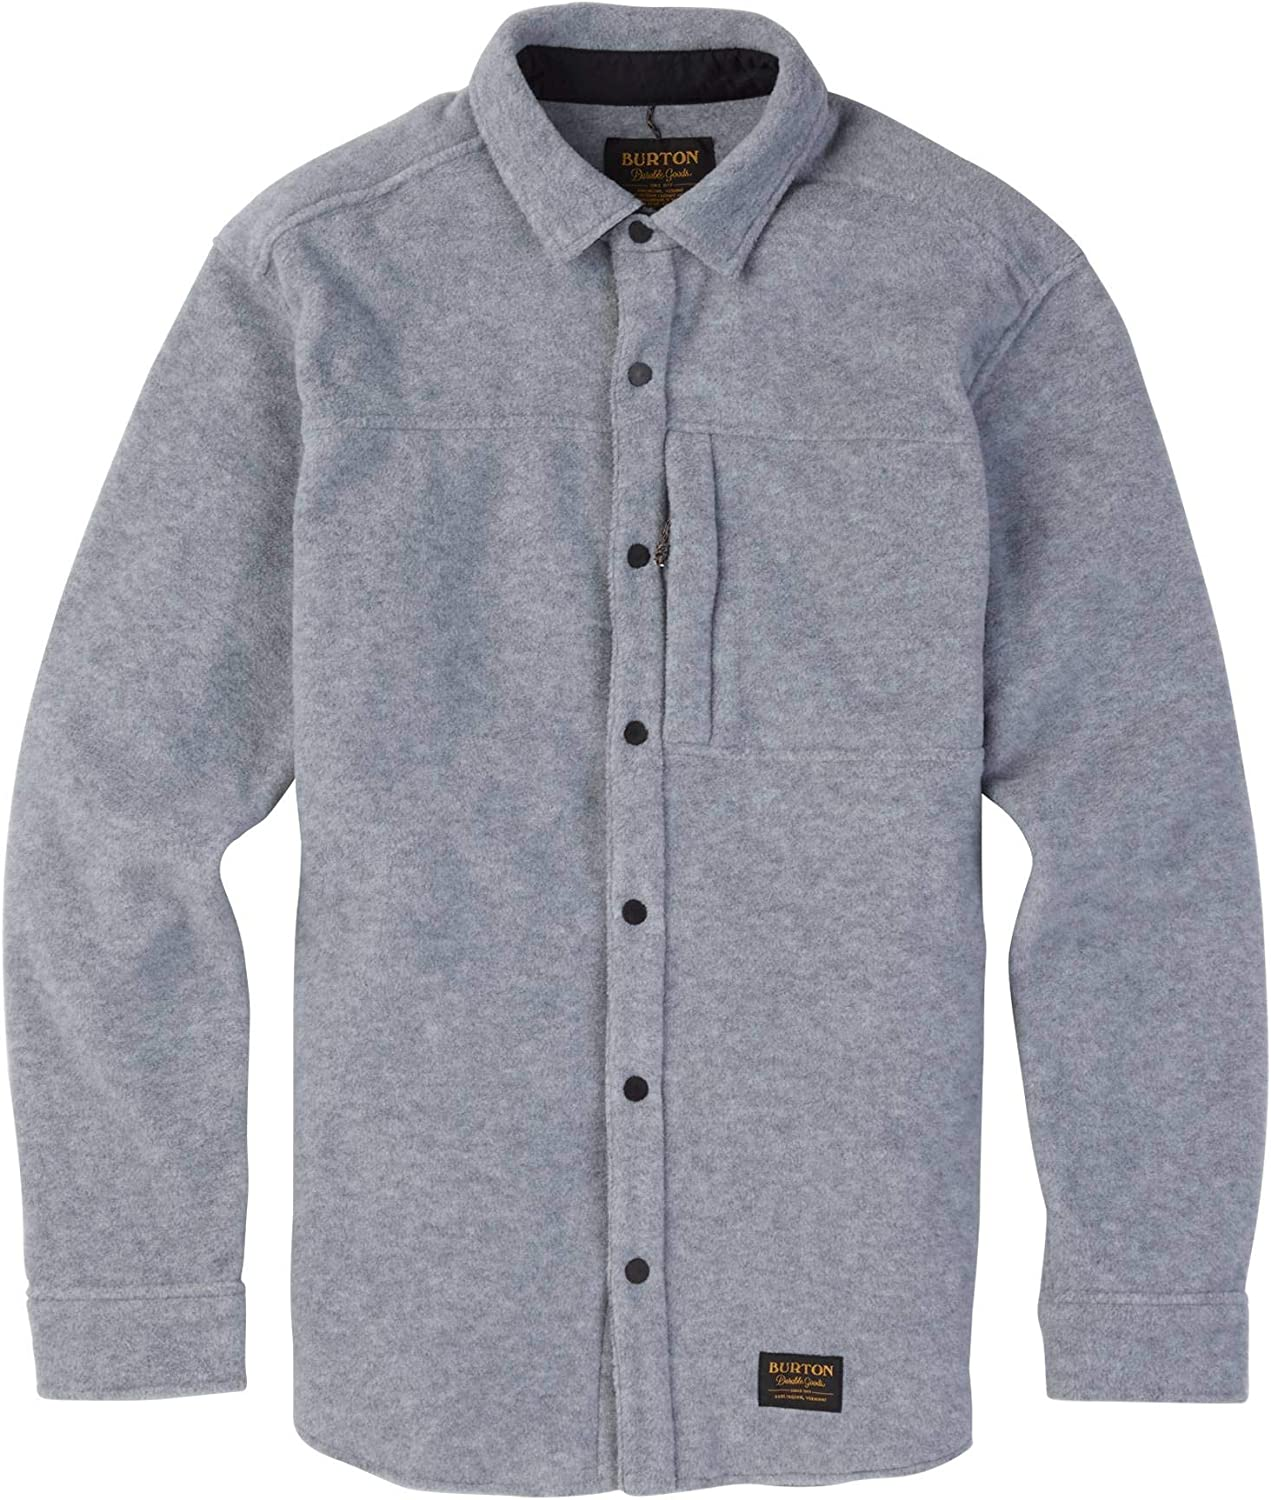 Burton Men's Spillway Snapup Fleece